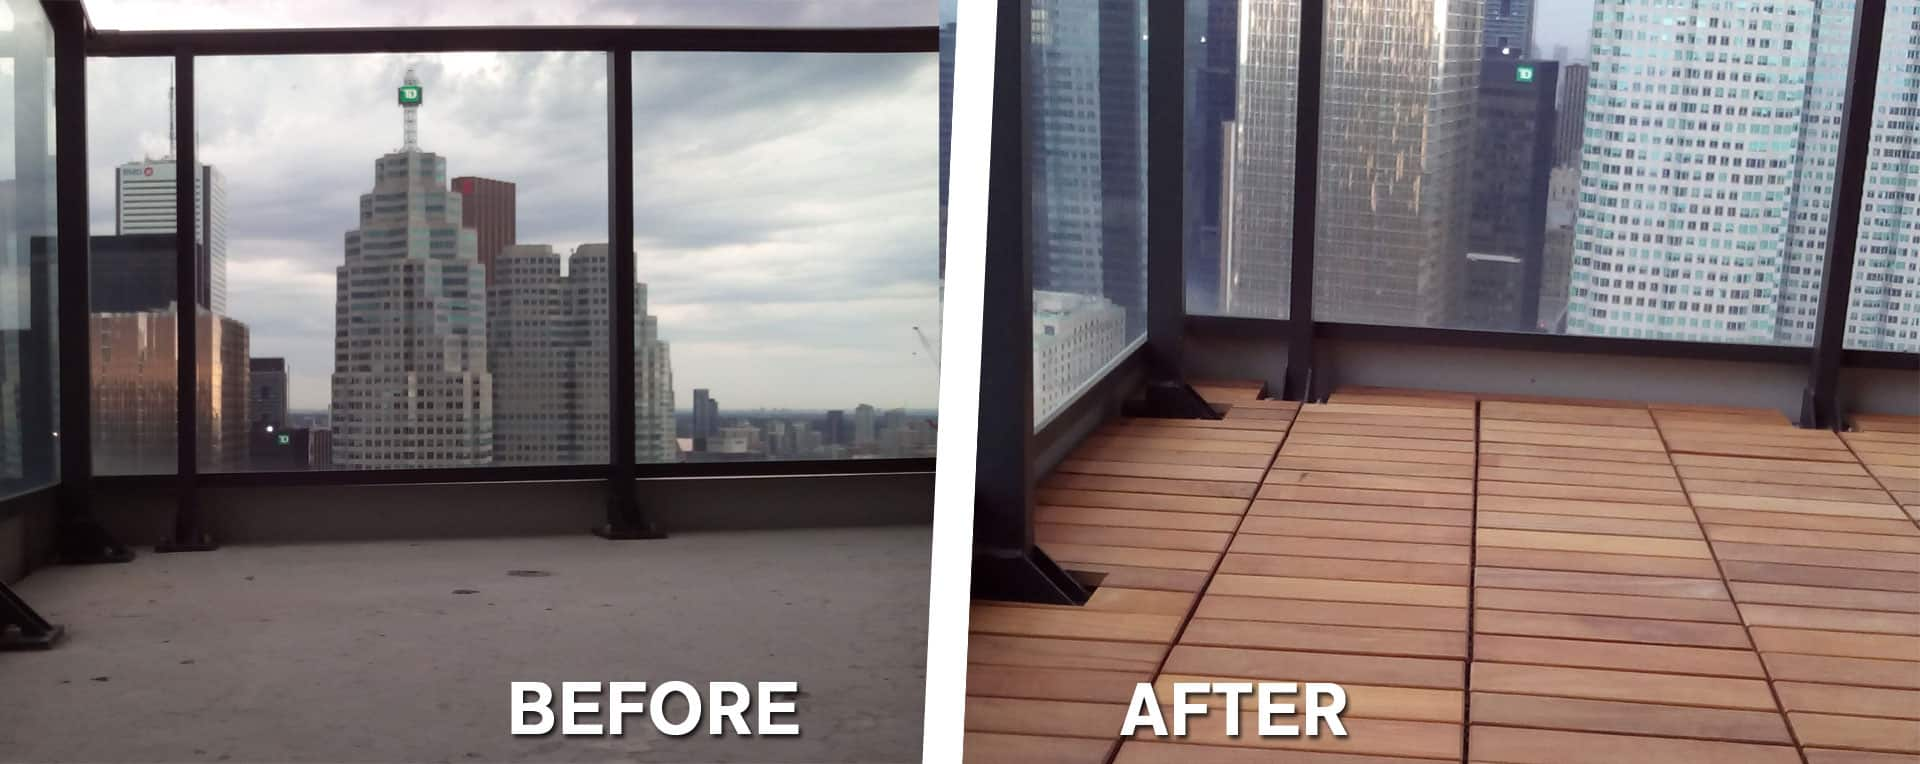 Before and After shot of garapa decking installed, with views of Toronto Skyline